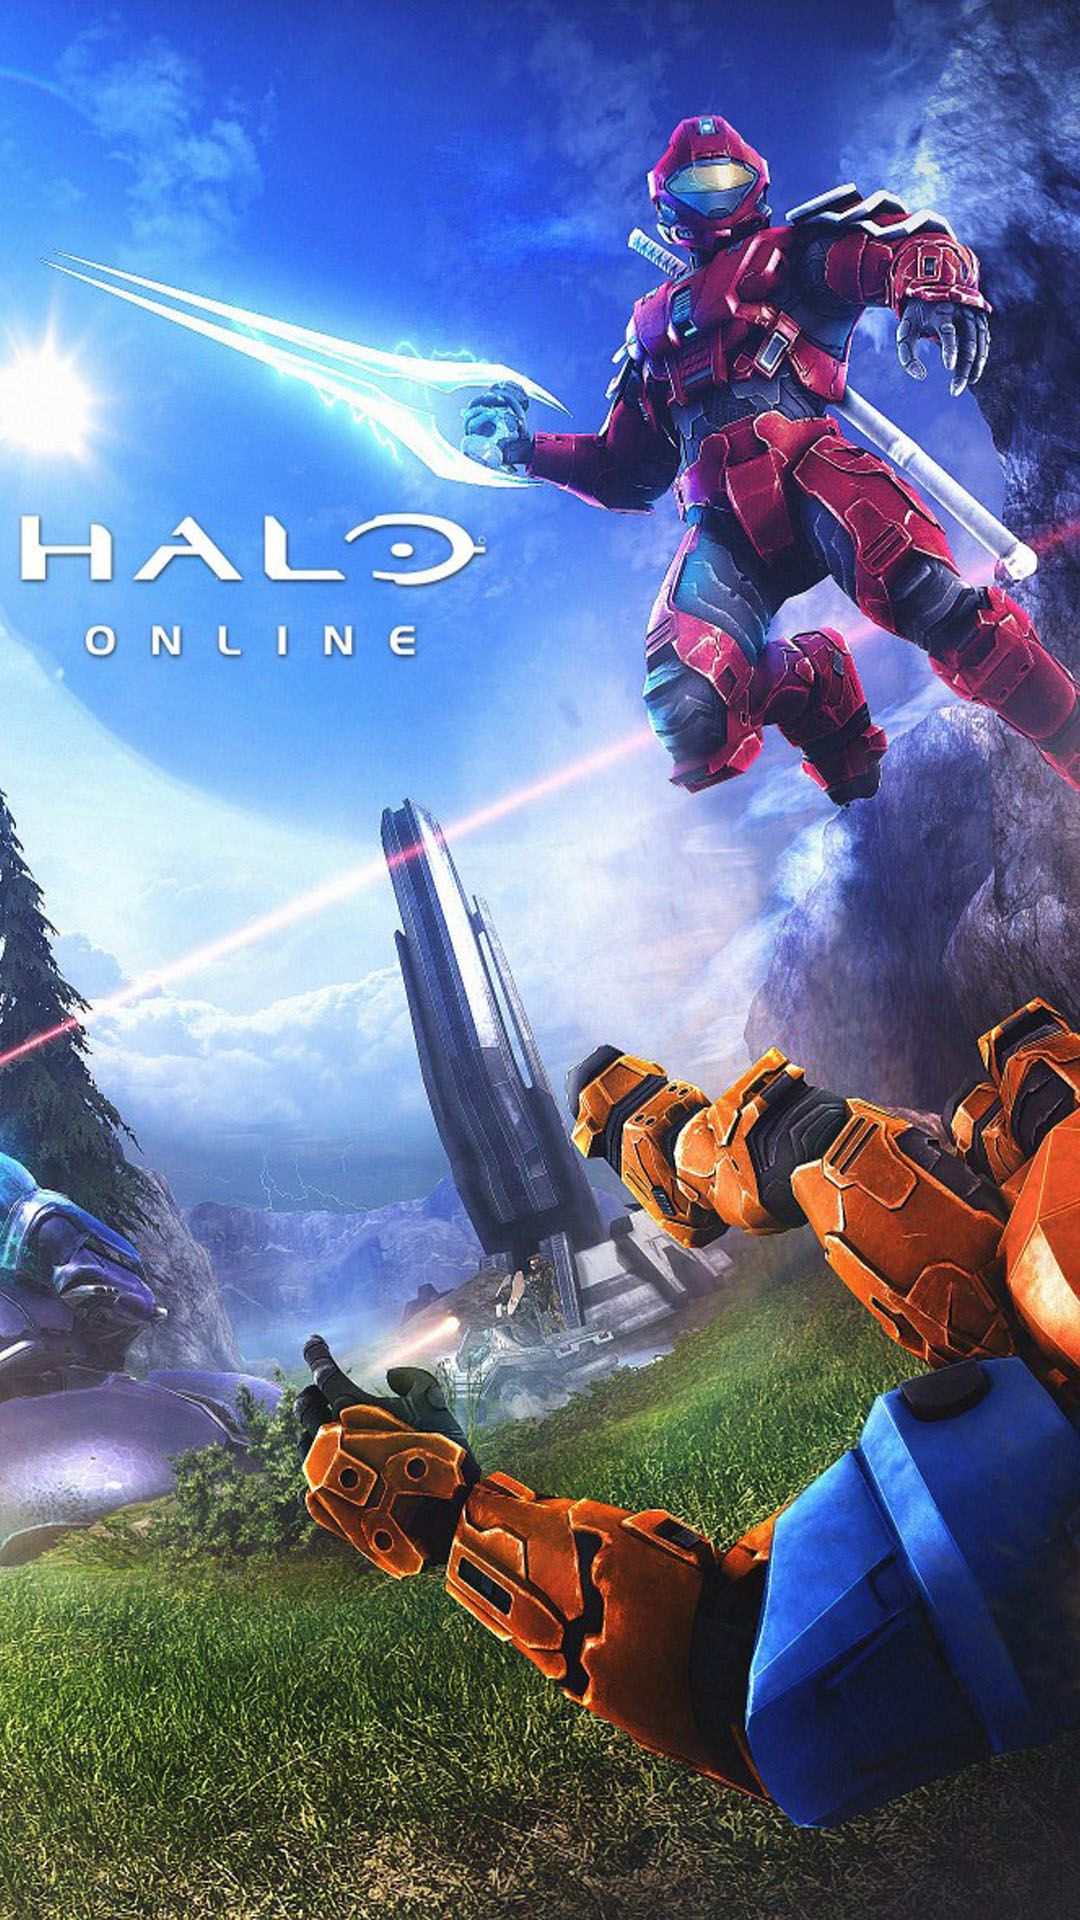 Halo 5 Wallpaper Ios Video Game Posters Wallpaper Iphone 6 Wallpaper